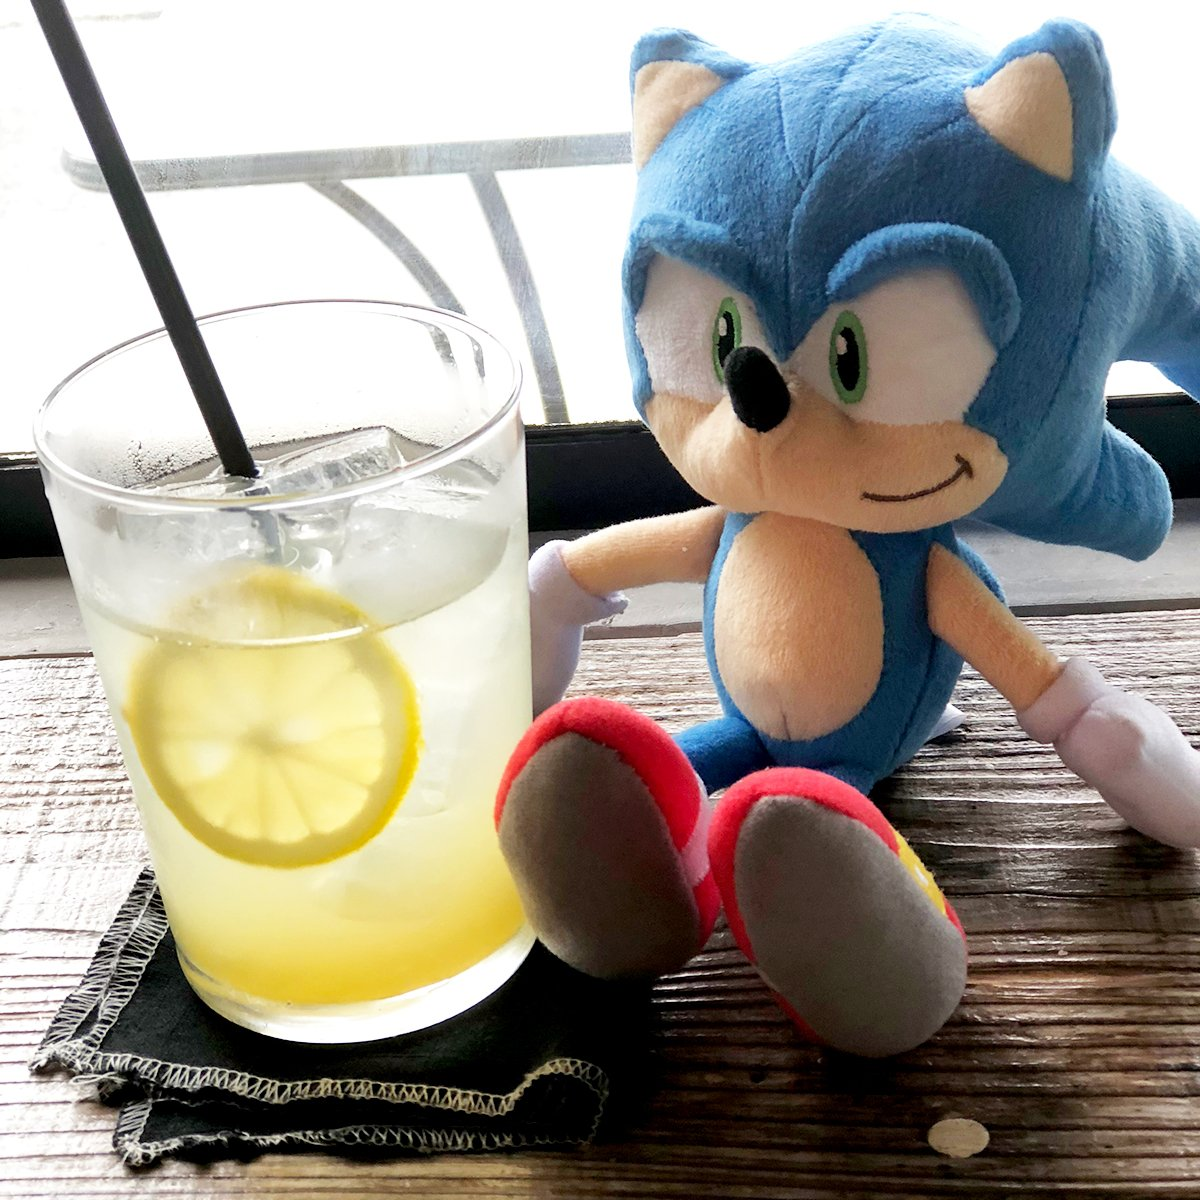 今日も暑いですね。  https://t.co/ov9X5qkQ8L #Sonic #Segalife